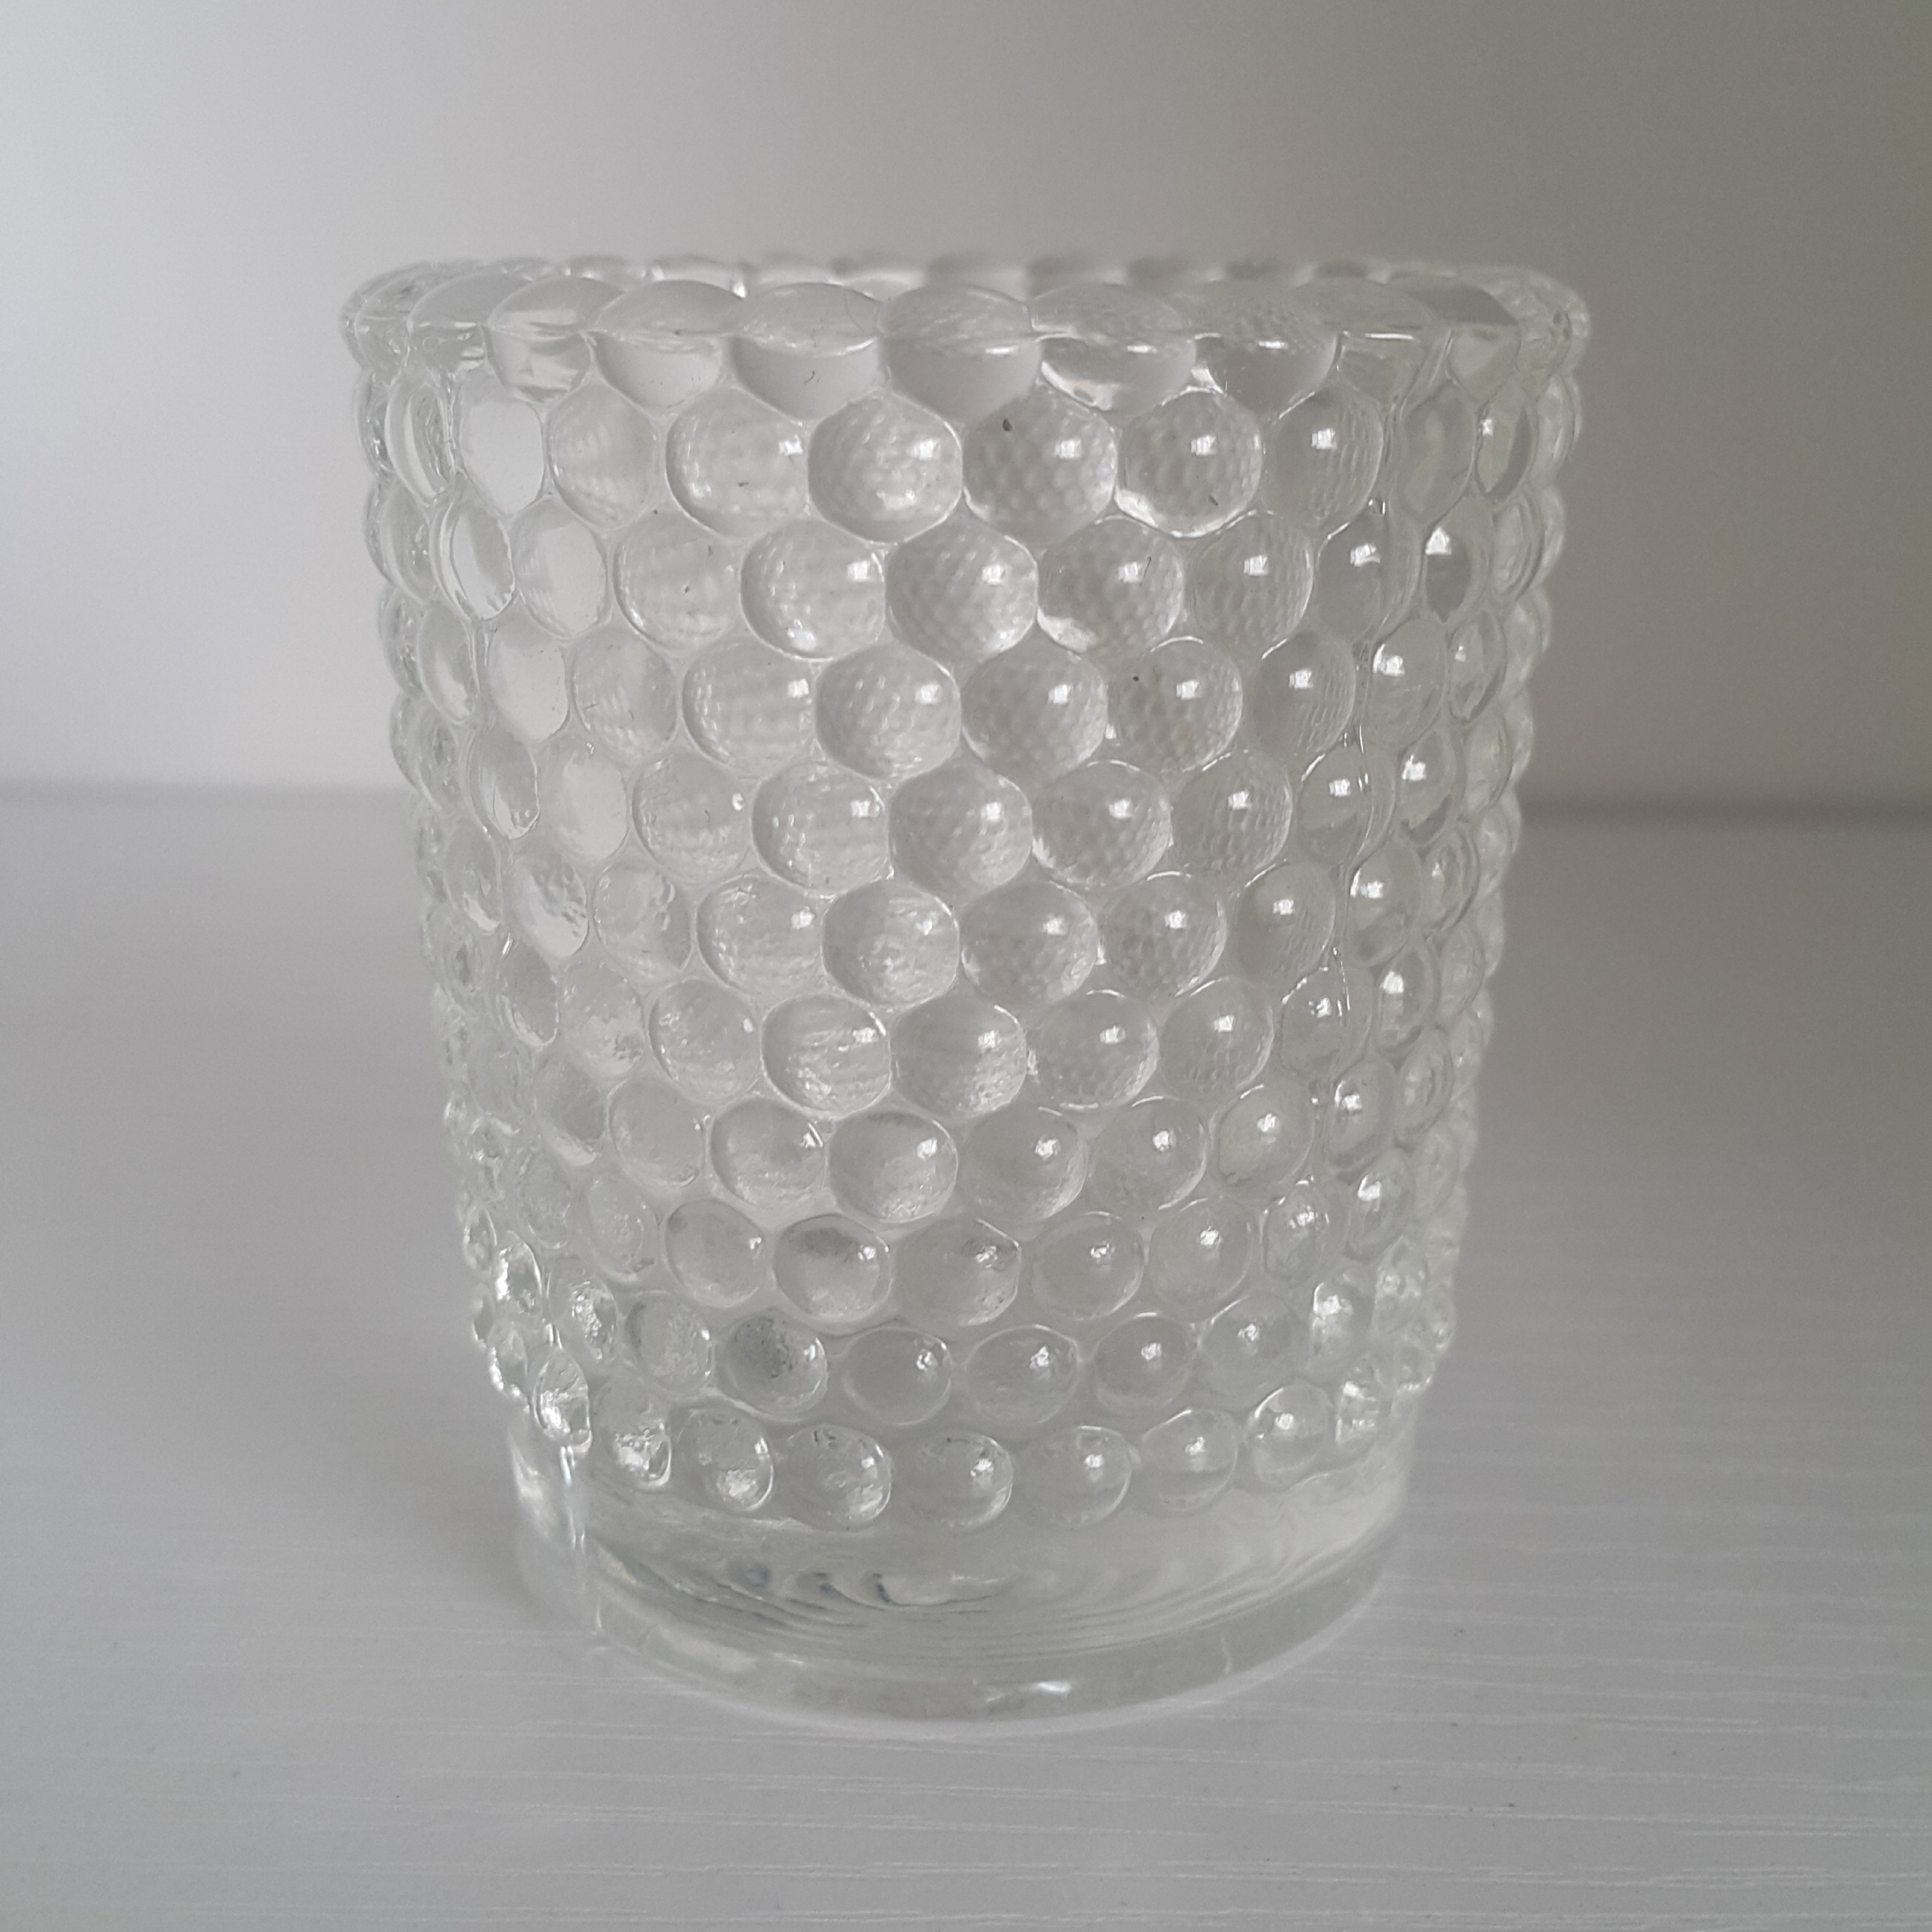 Vintage Style Clear Hobnail Glass Votive Candle Holders, Set of 12